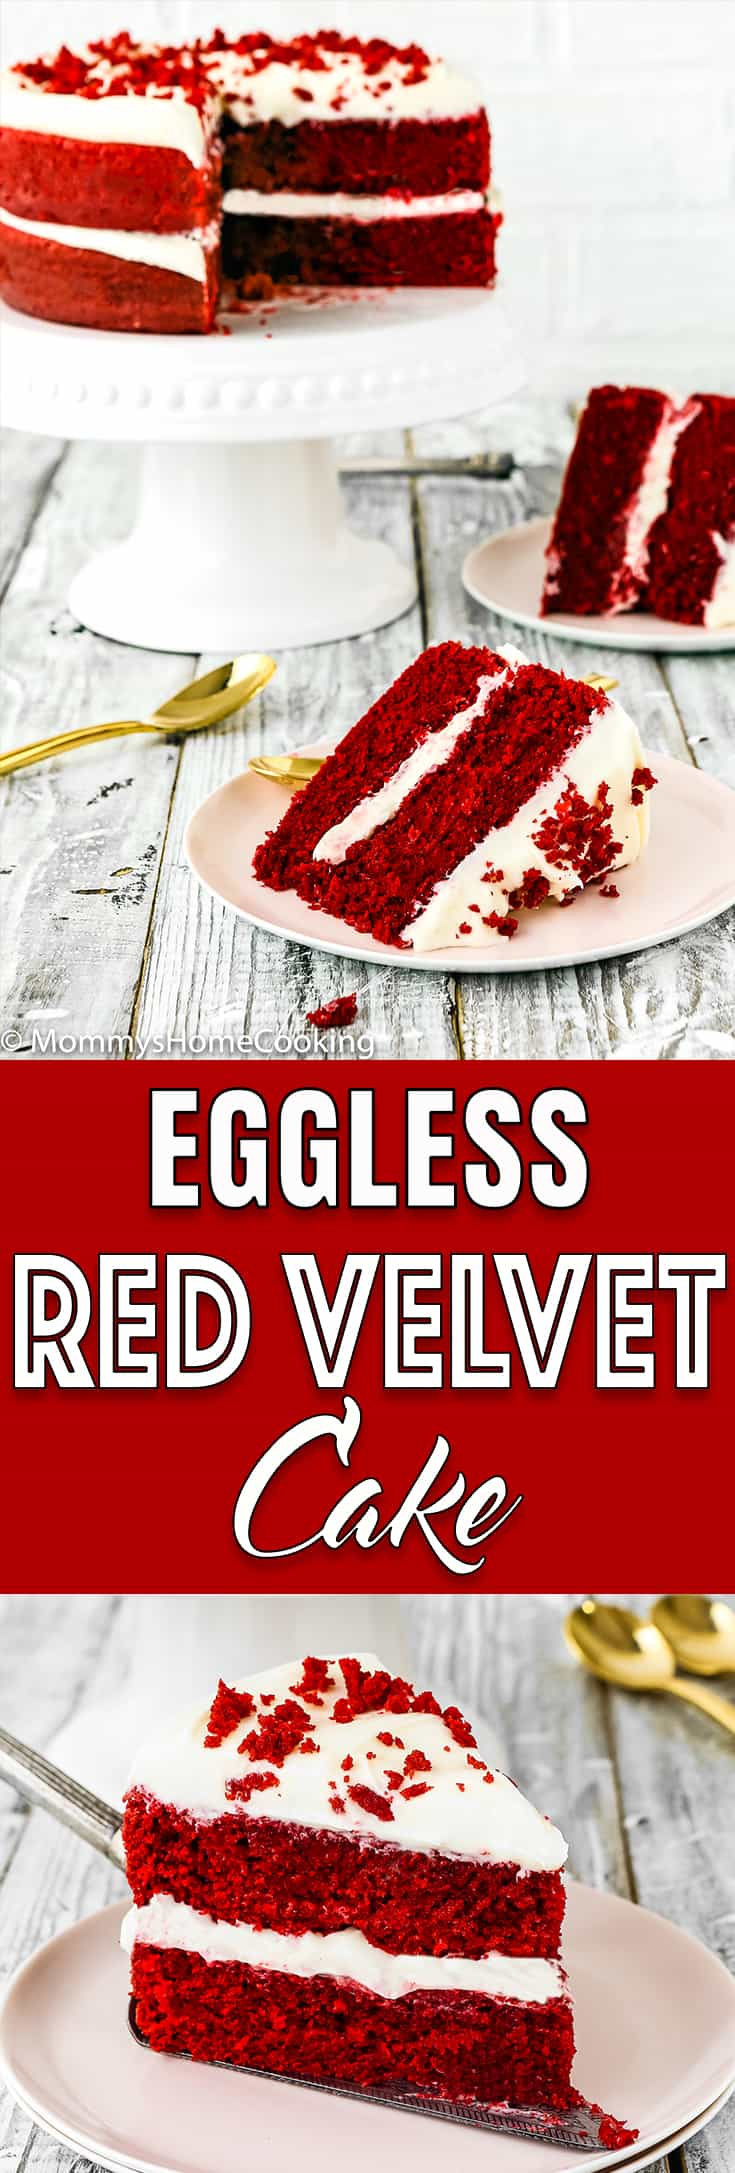 This Eggless Red Velvet Cake is moist, rich, and amazingly tasty! Two lovely layers of tender vibrant sponge red cake with fluffy cream cheese frosting. I promise you will not miss the eggs.  This easy dessert is the perfect showstopper for any occasion. http://mommyshomecooking.com